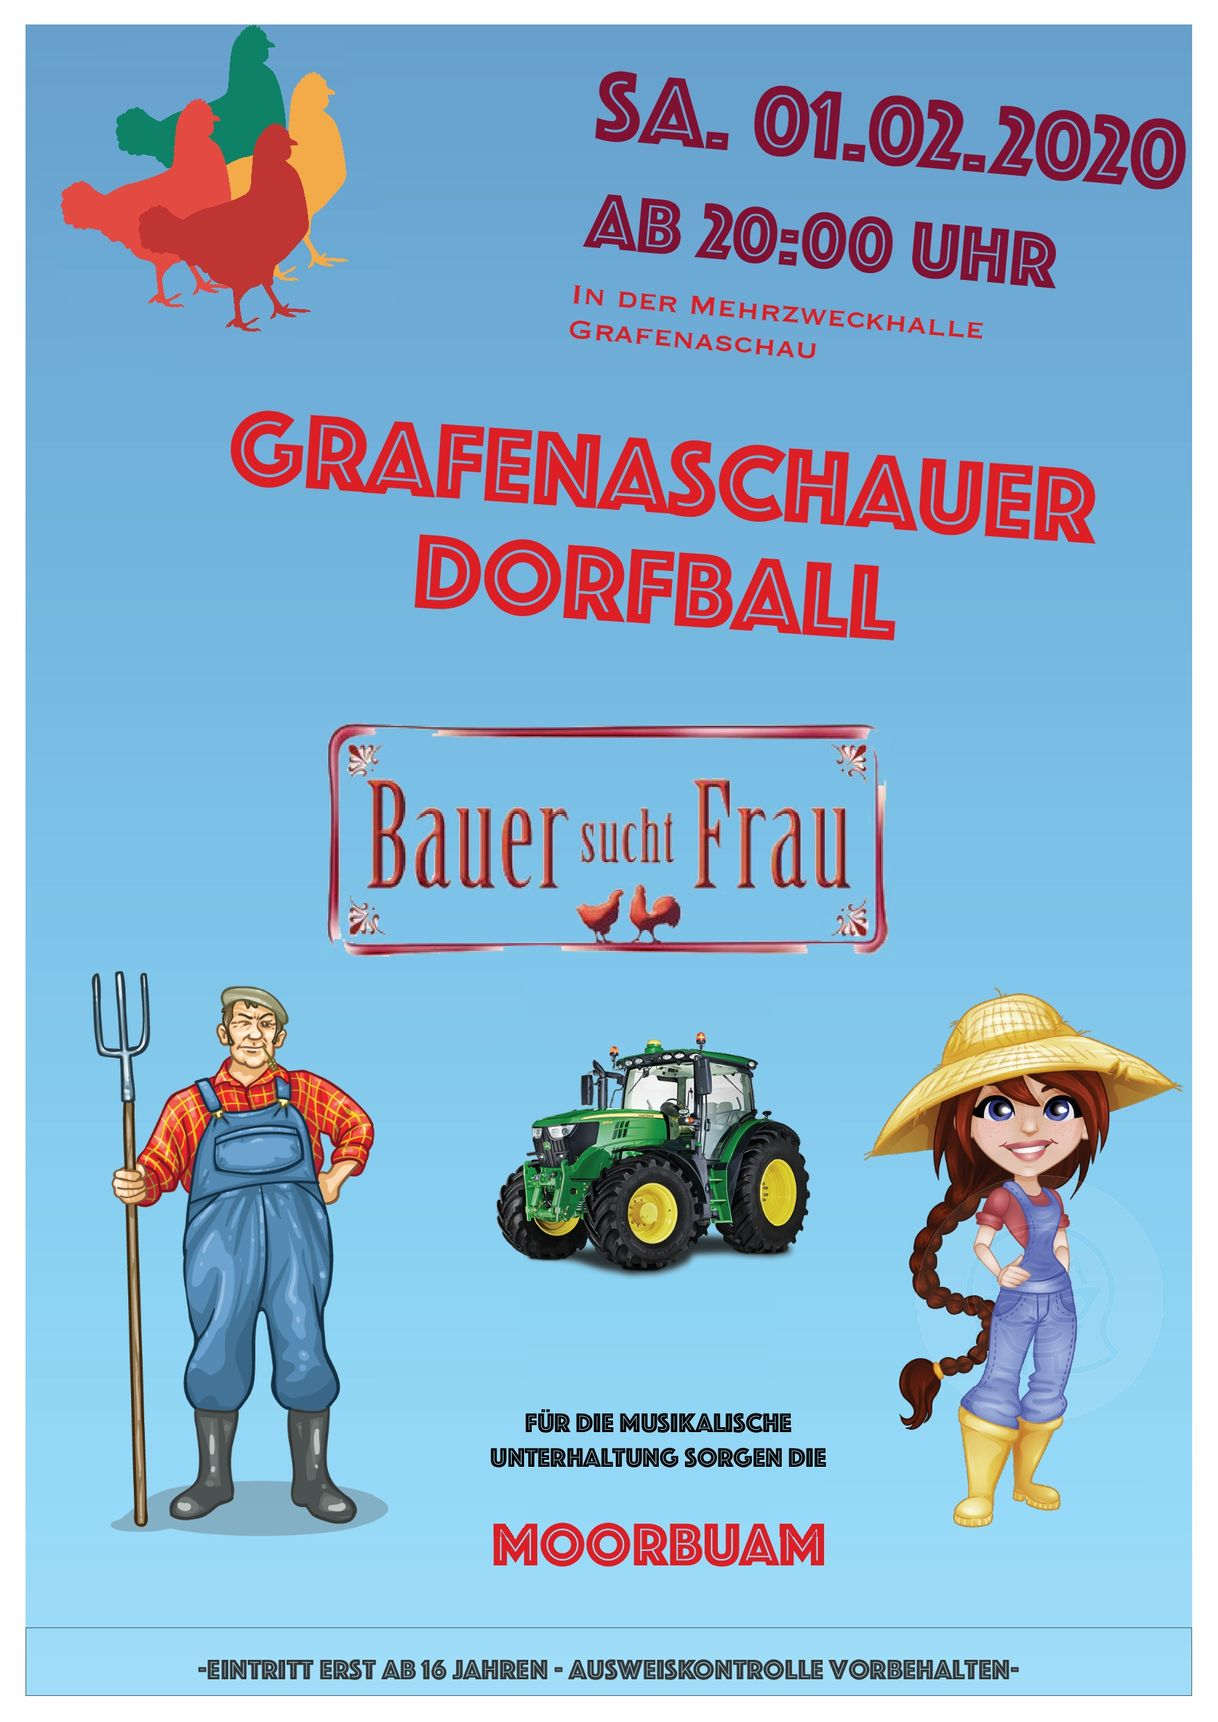 200103 Dorfball Grafenaschau